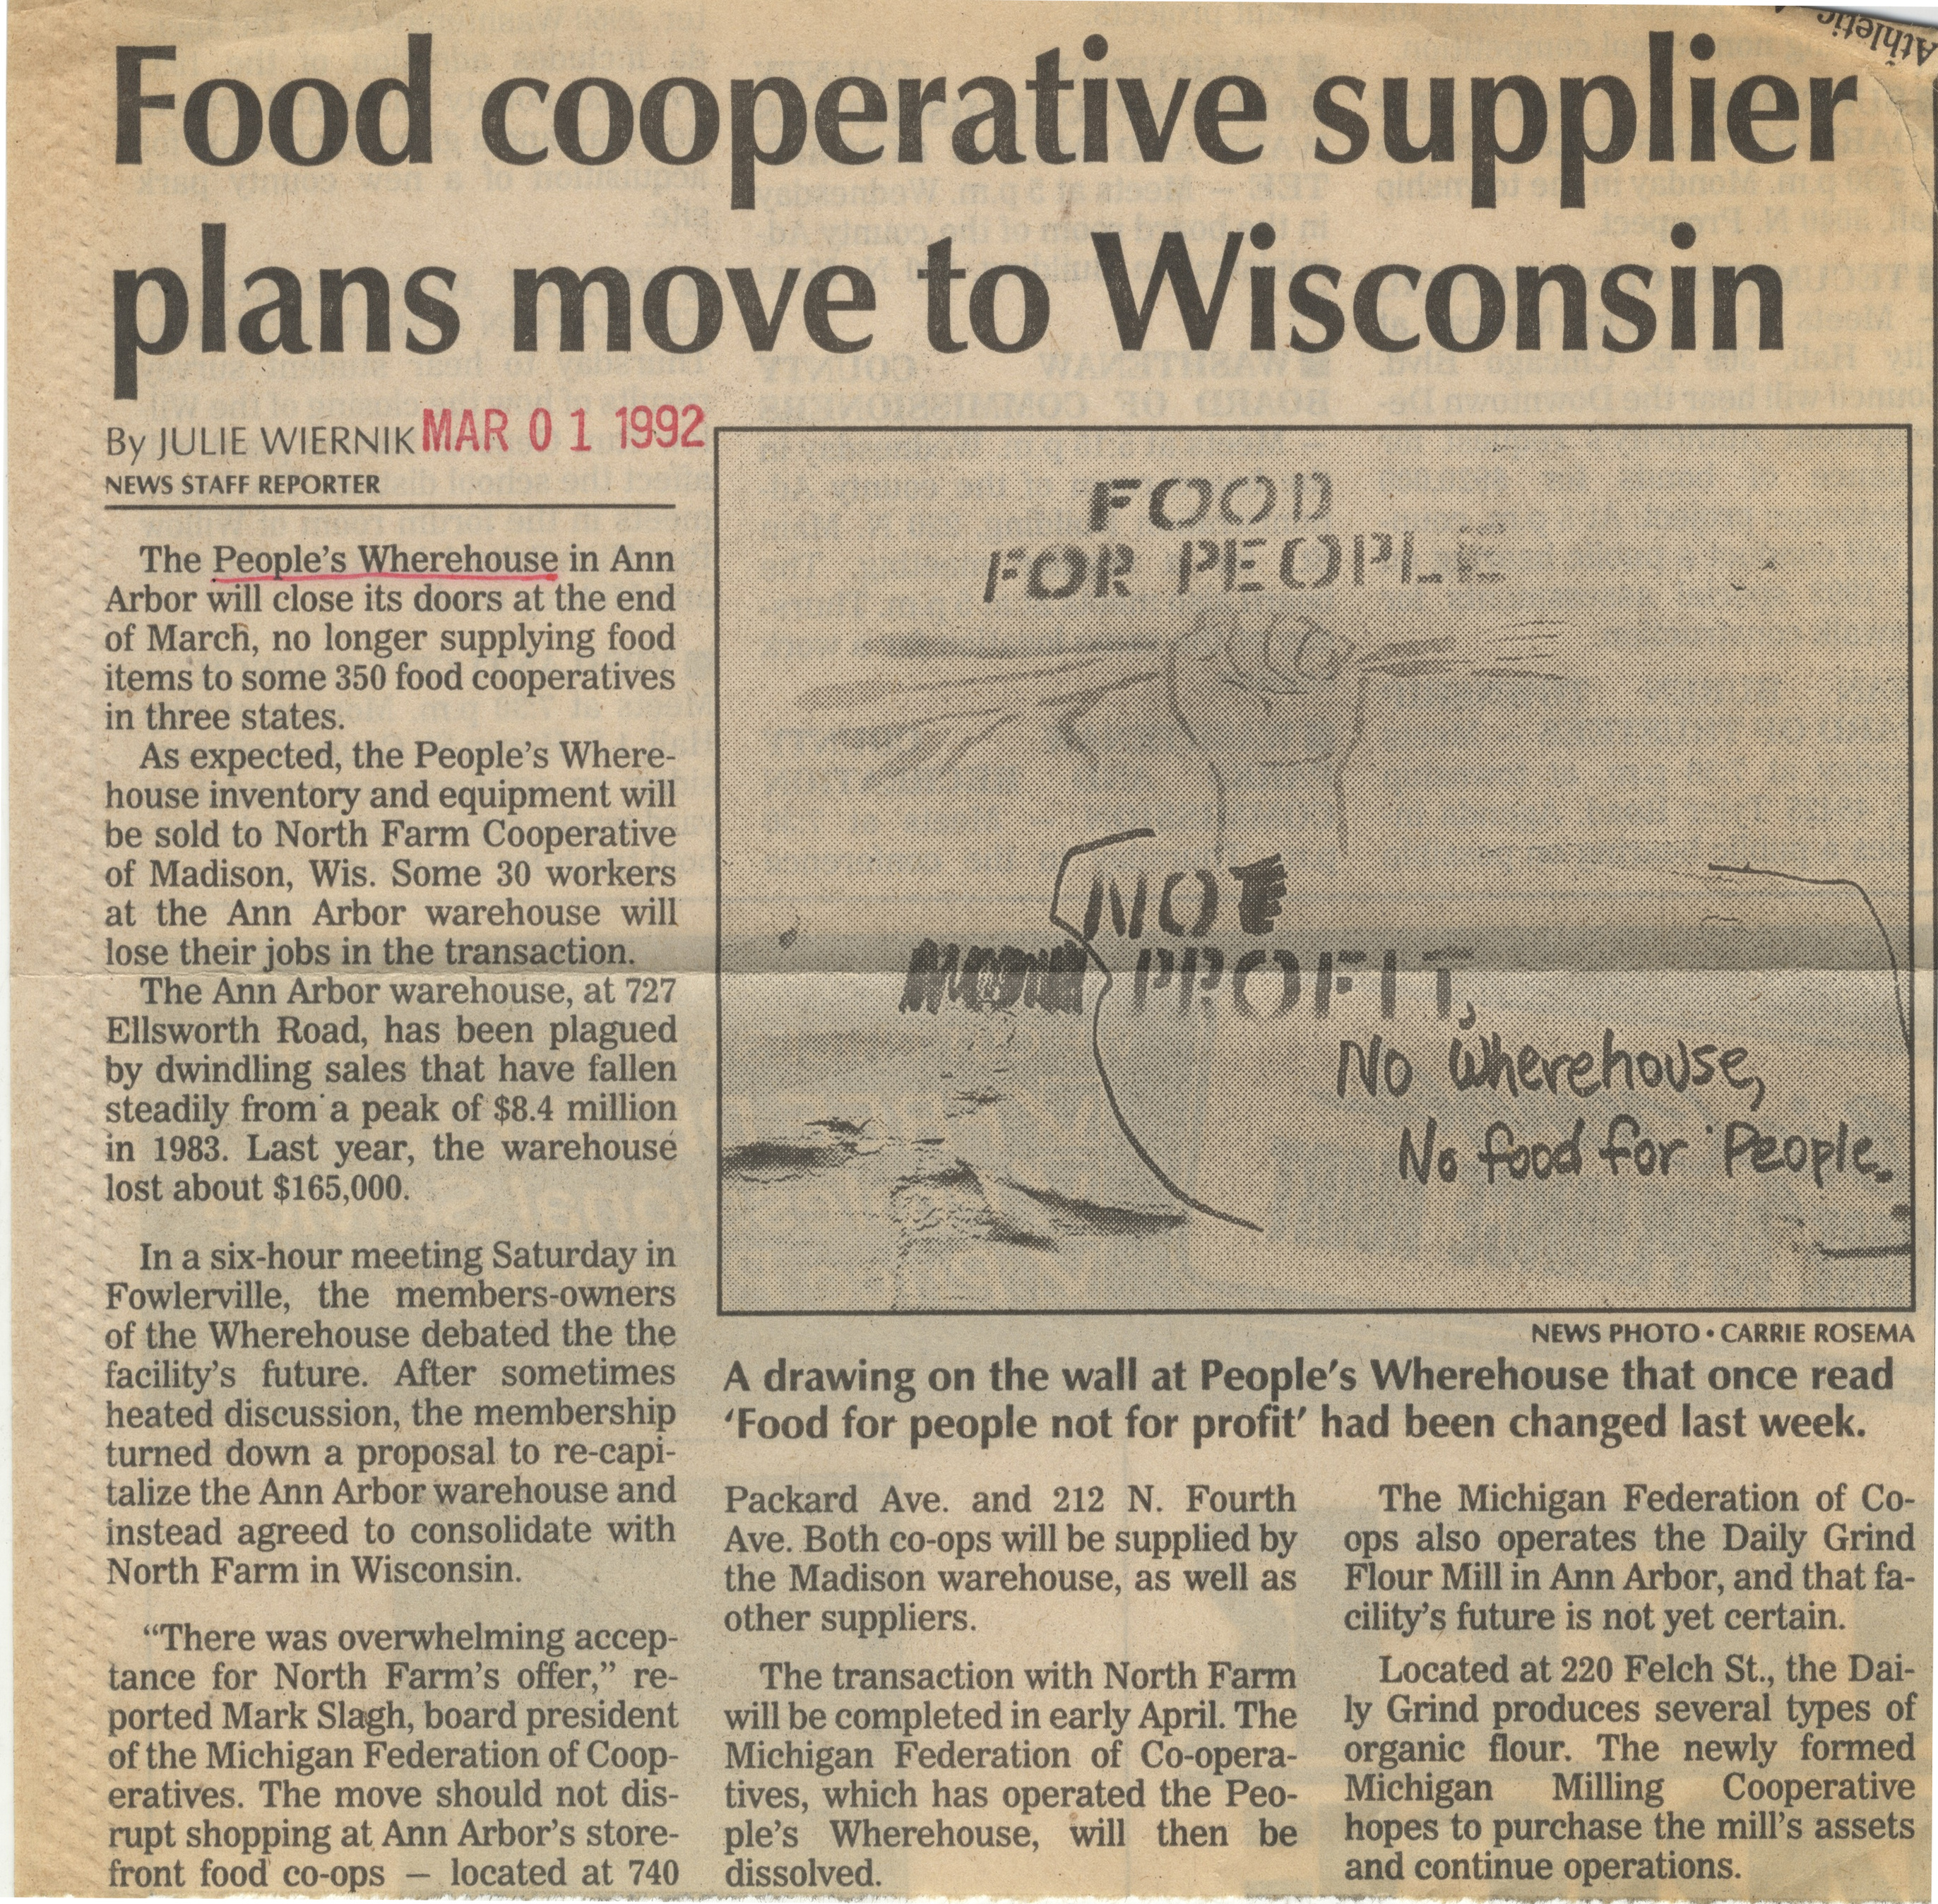 Food Cooperative Supplier Plans Move To Wisconsin image